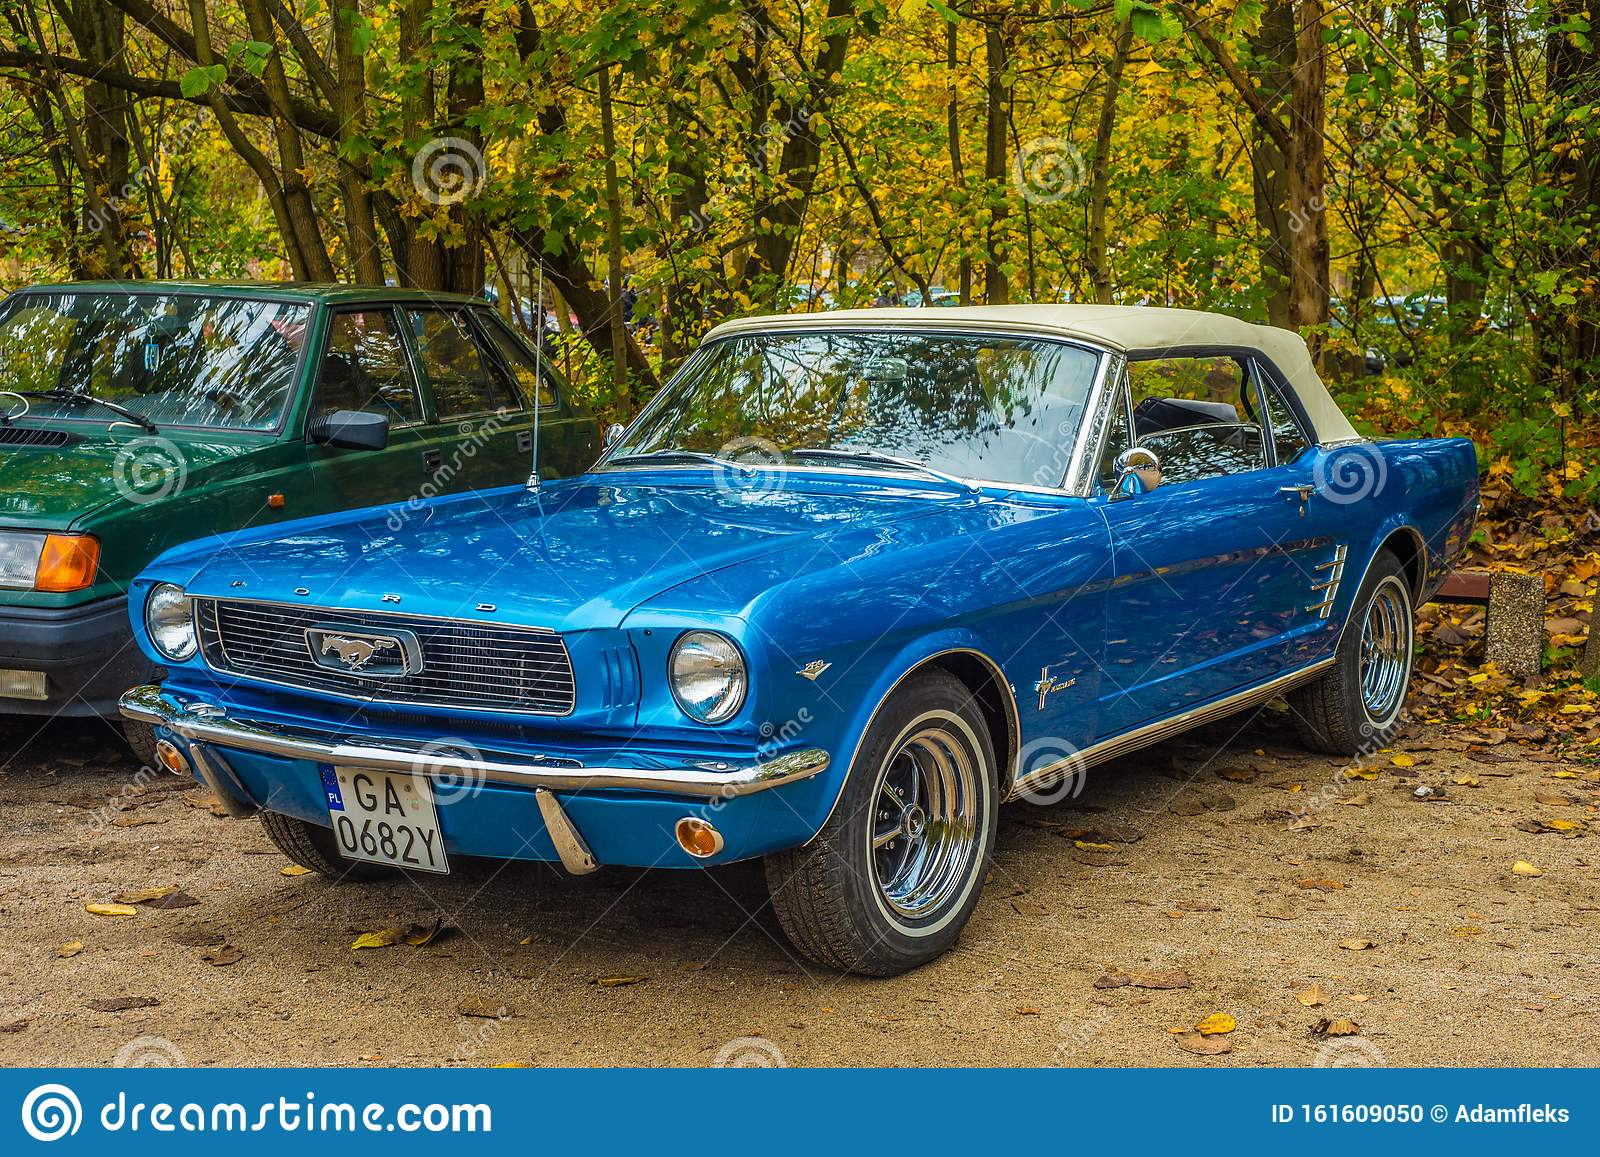 Classic Elegant And Shining Blue Ford Mustang At Car Show Editorial Image Image Of Brand Autumn 161609050